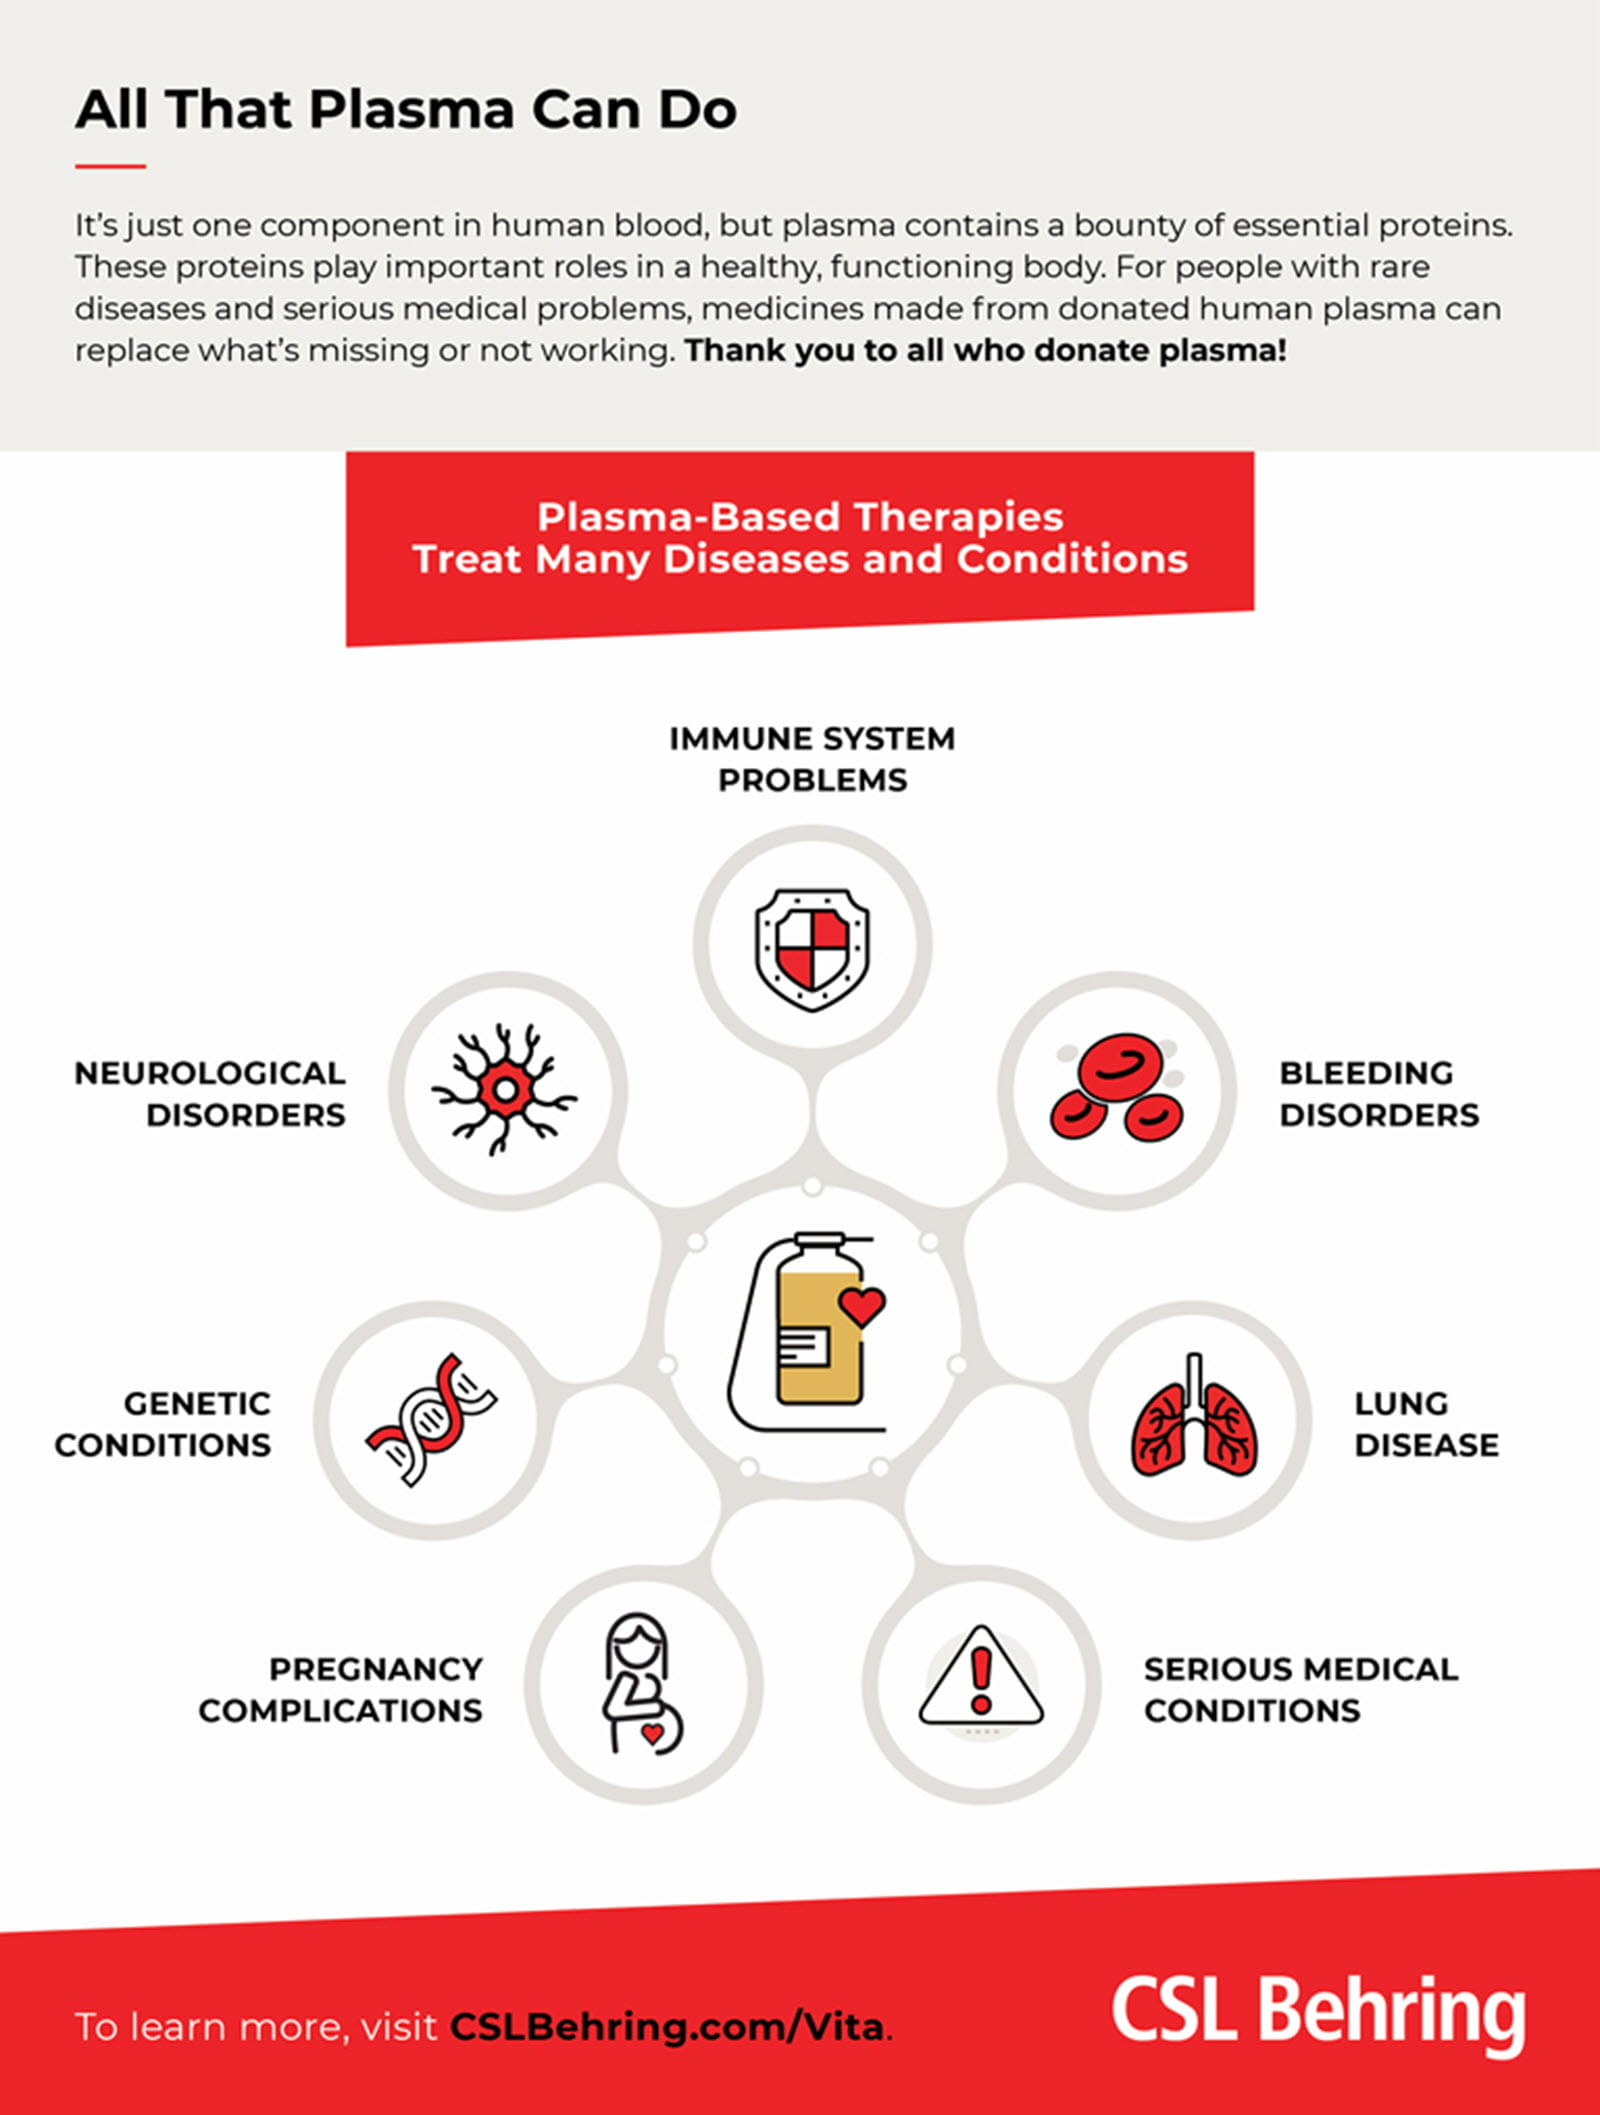 All That Plasma Can Do infographic showing its medical uses